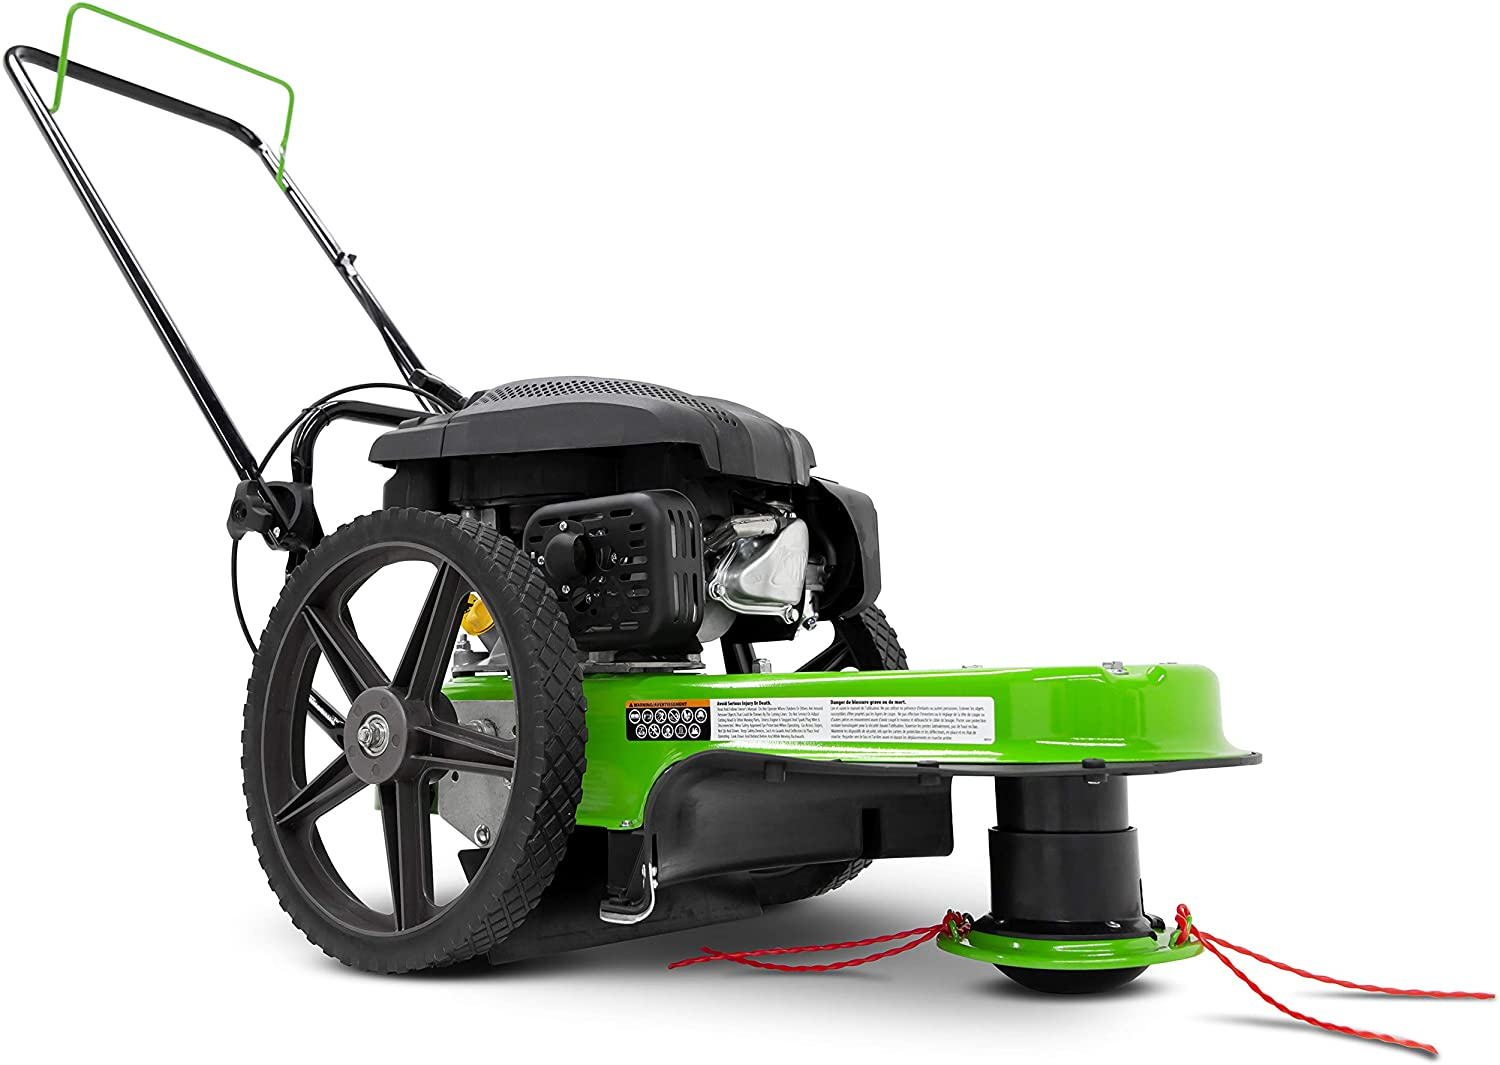 Tazz 35258 Walk-Behind String Trimmer and Mower